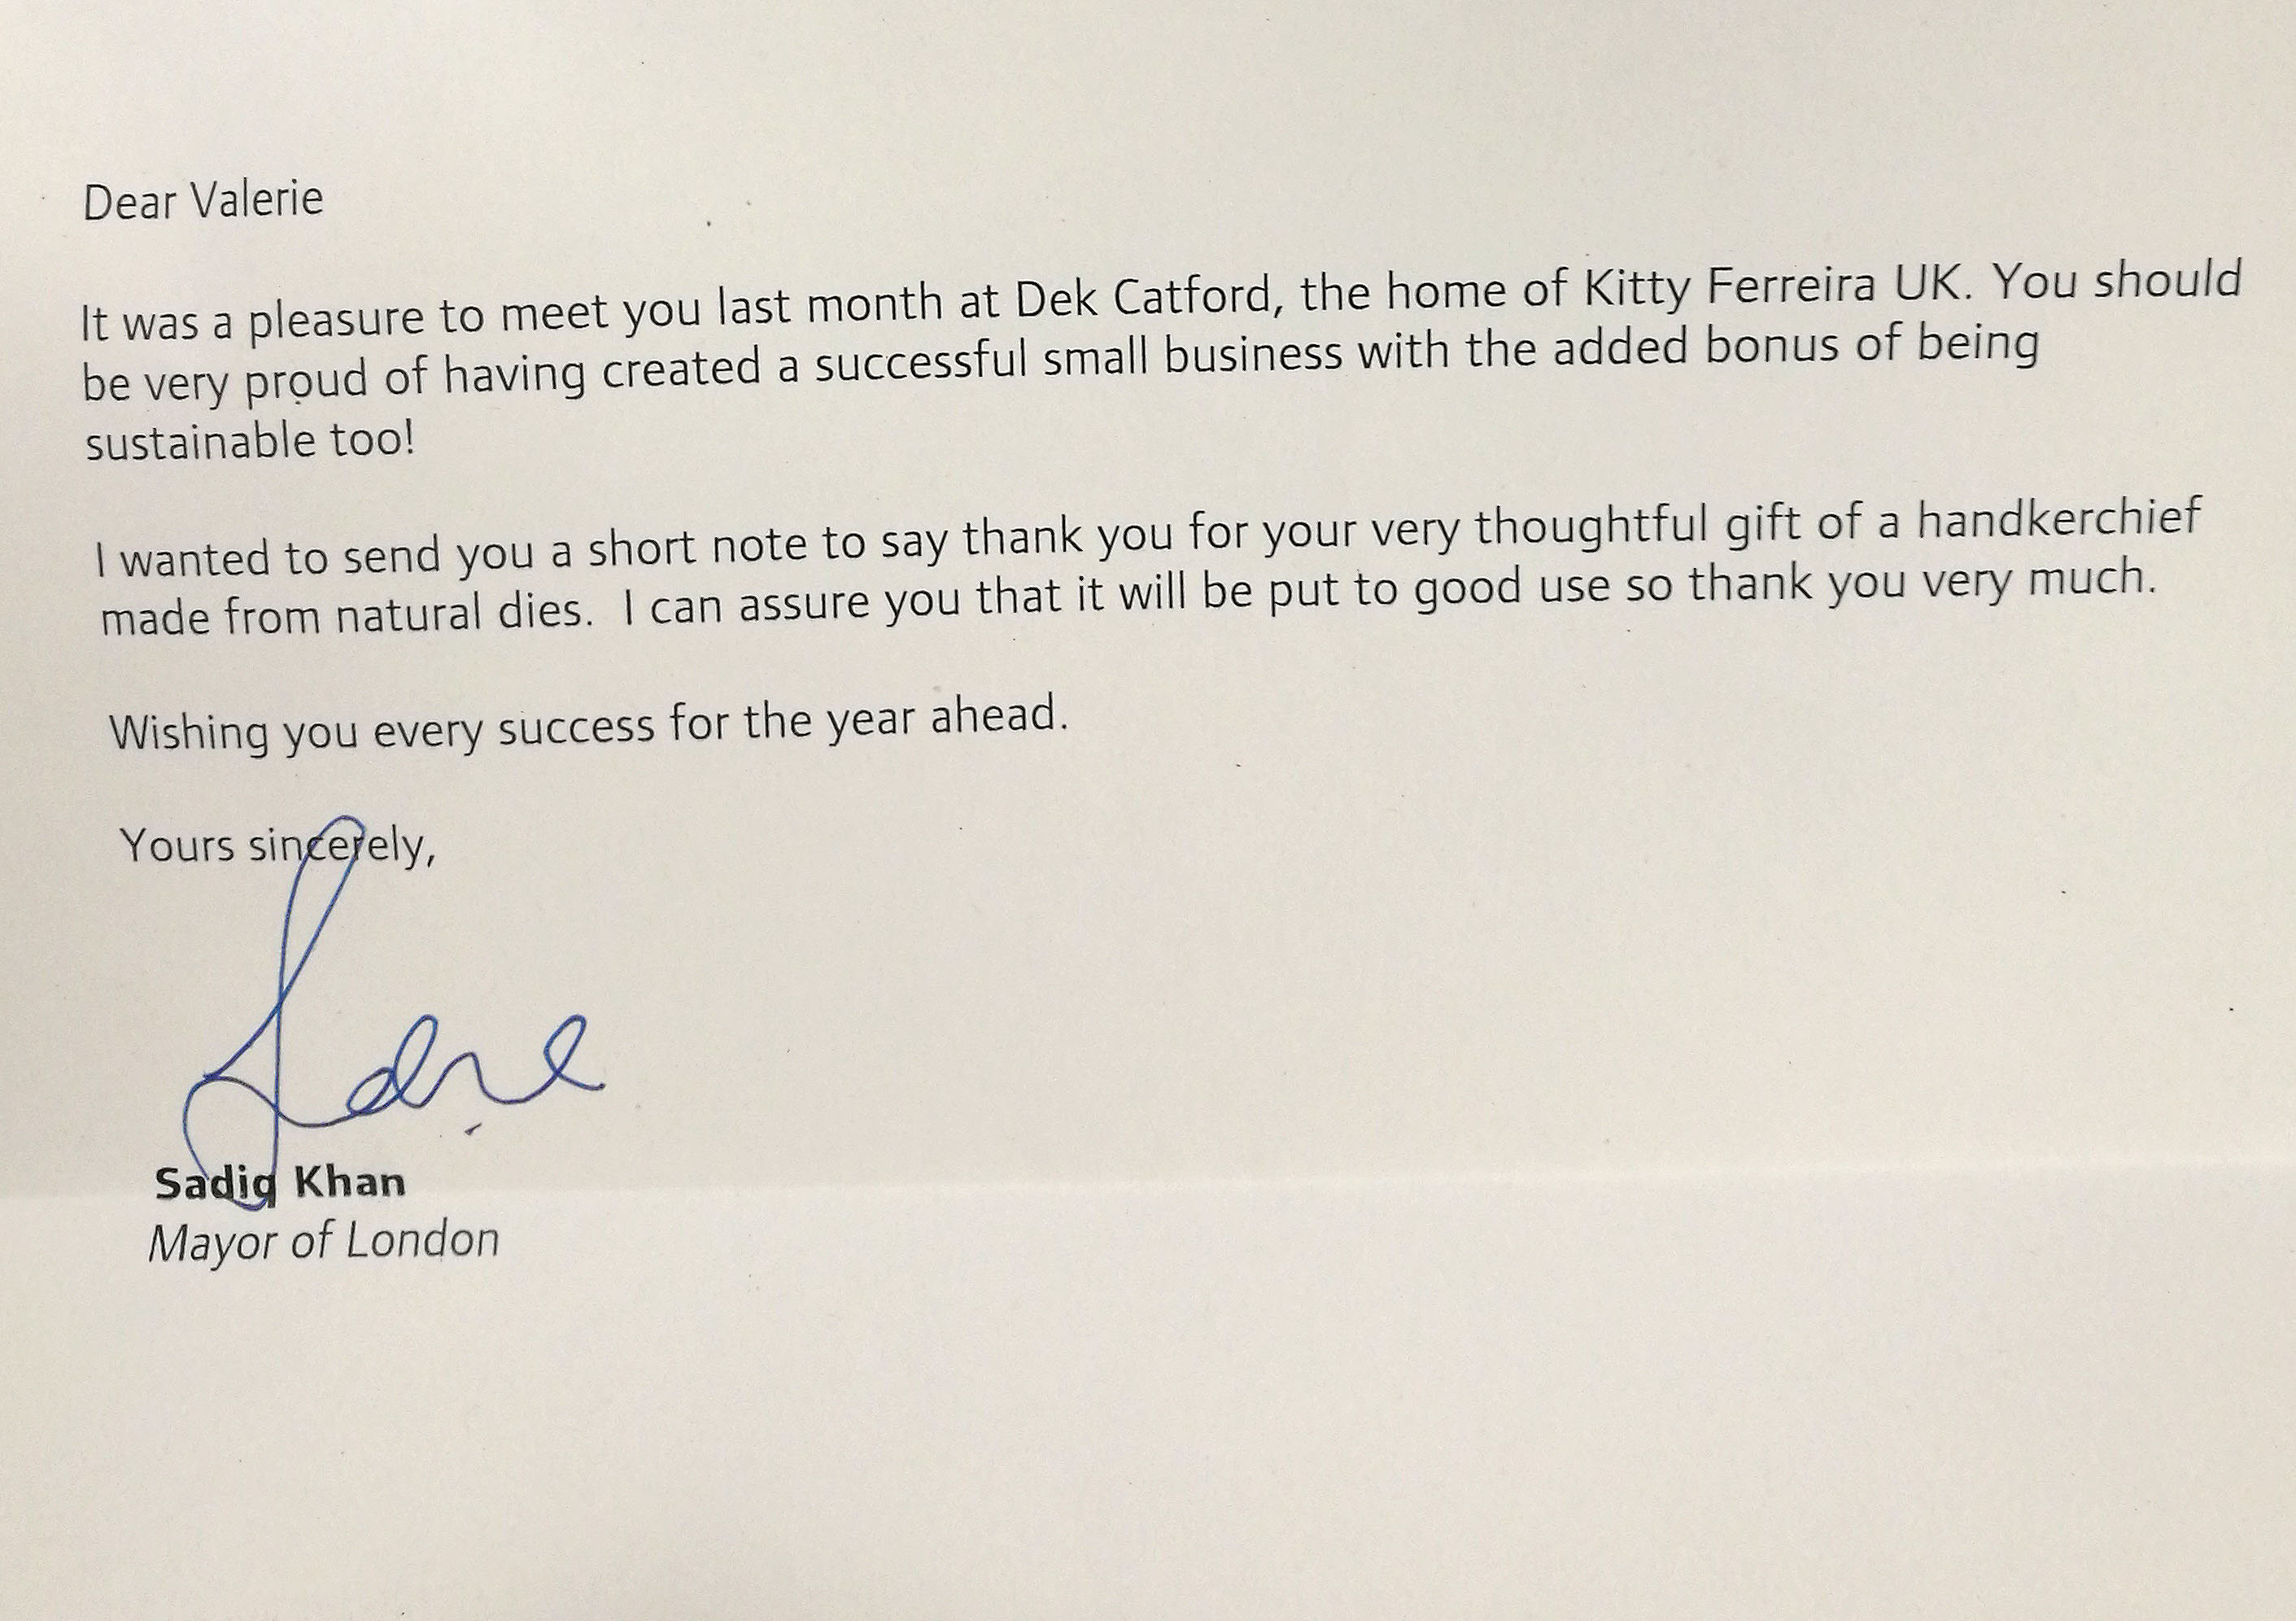 Thank you letter from Sadiq Khan, Mayor of London